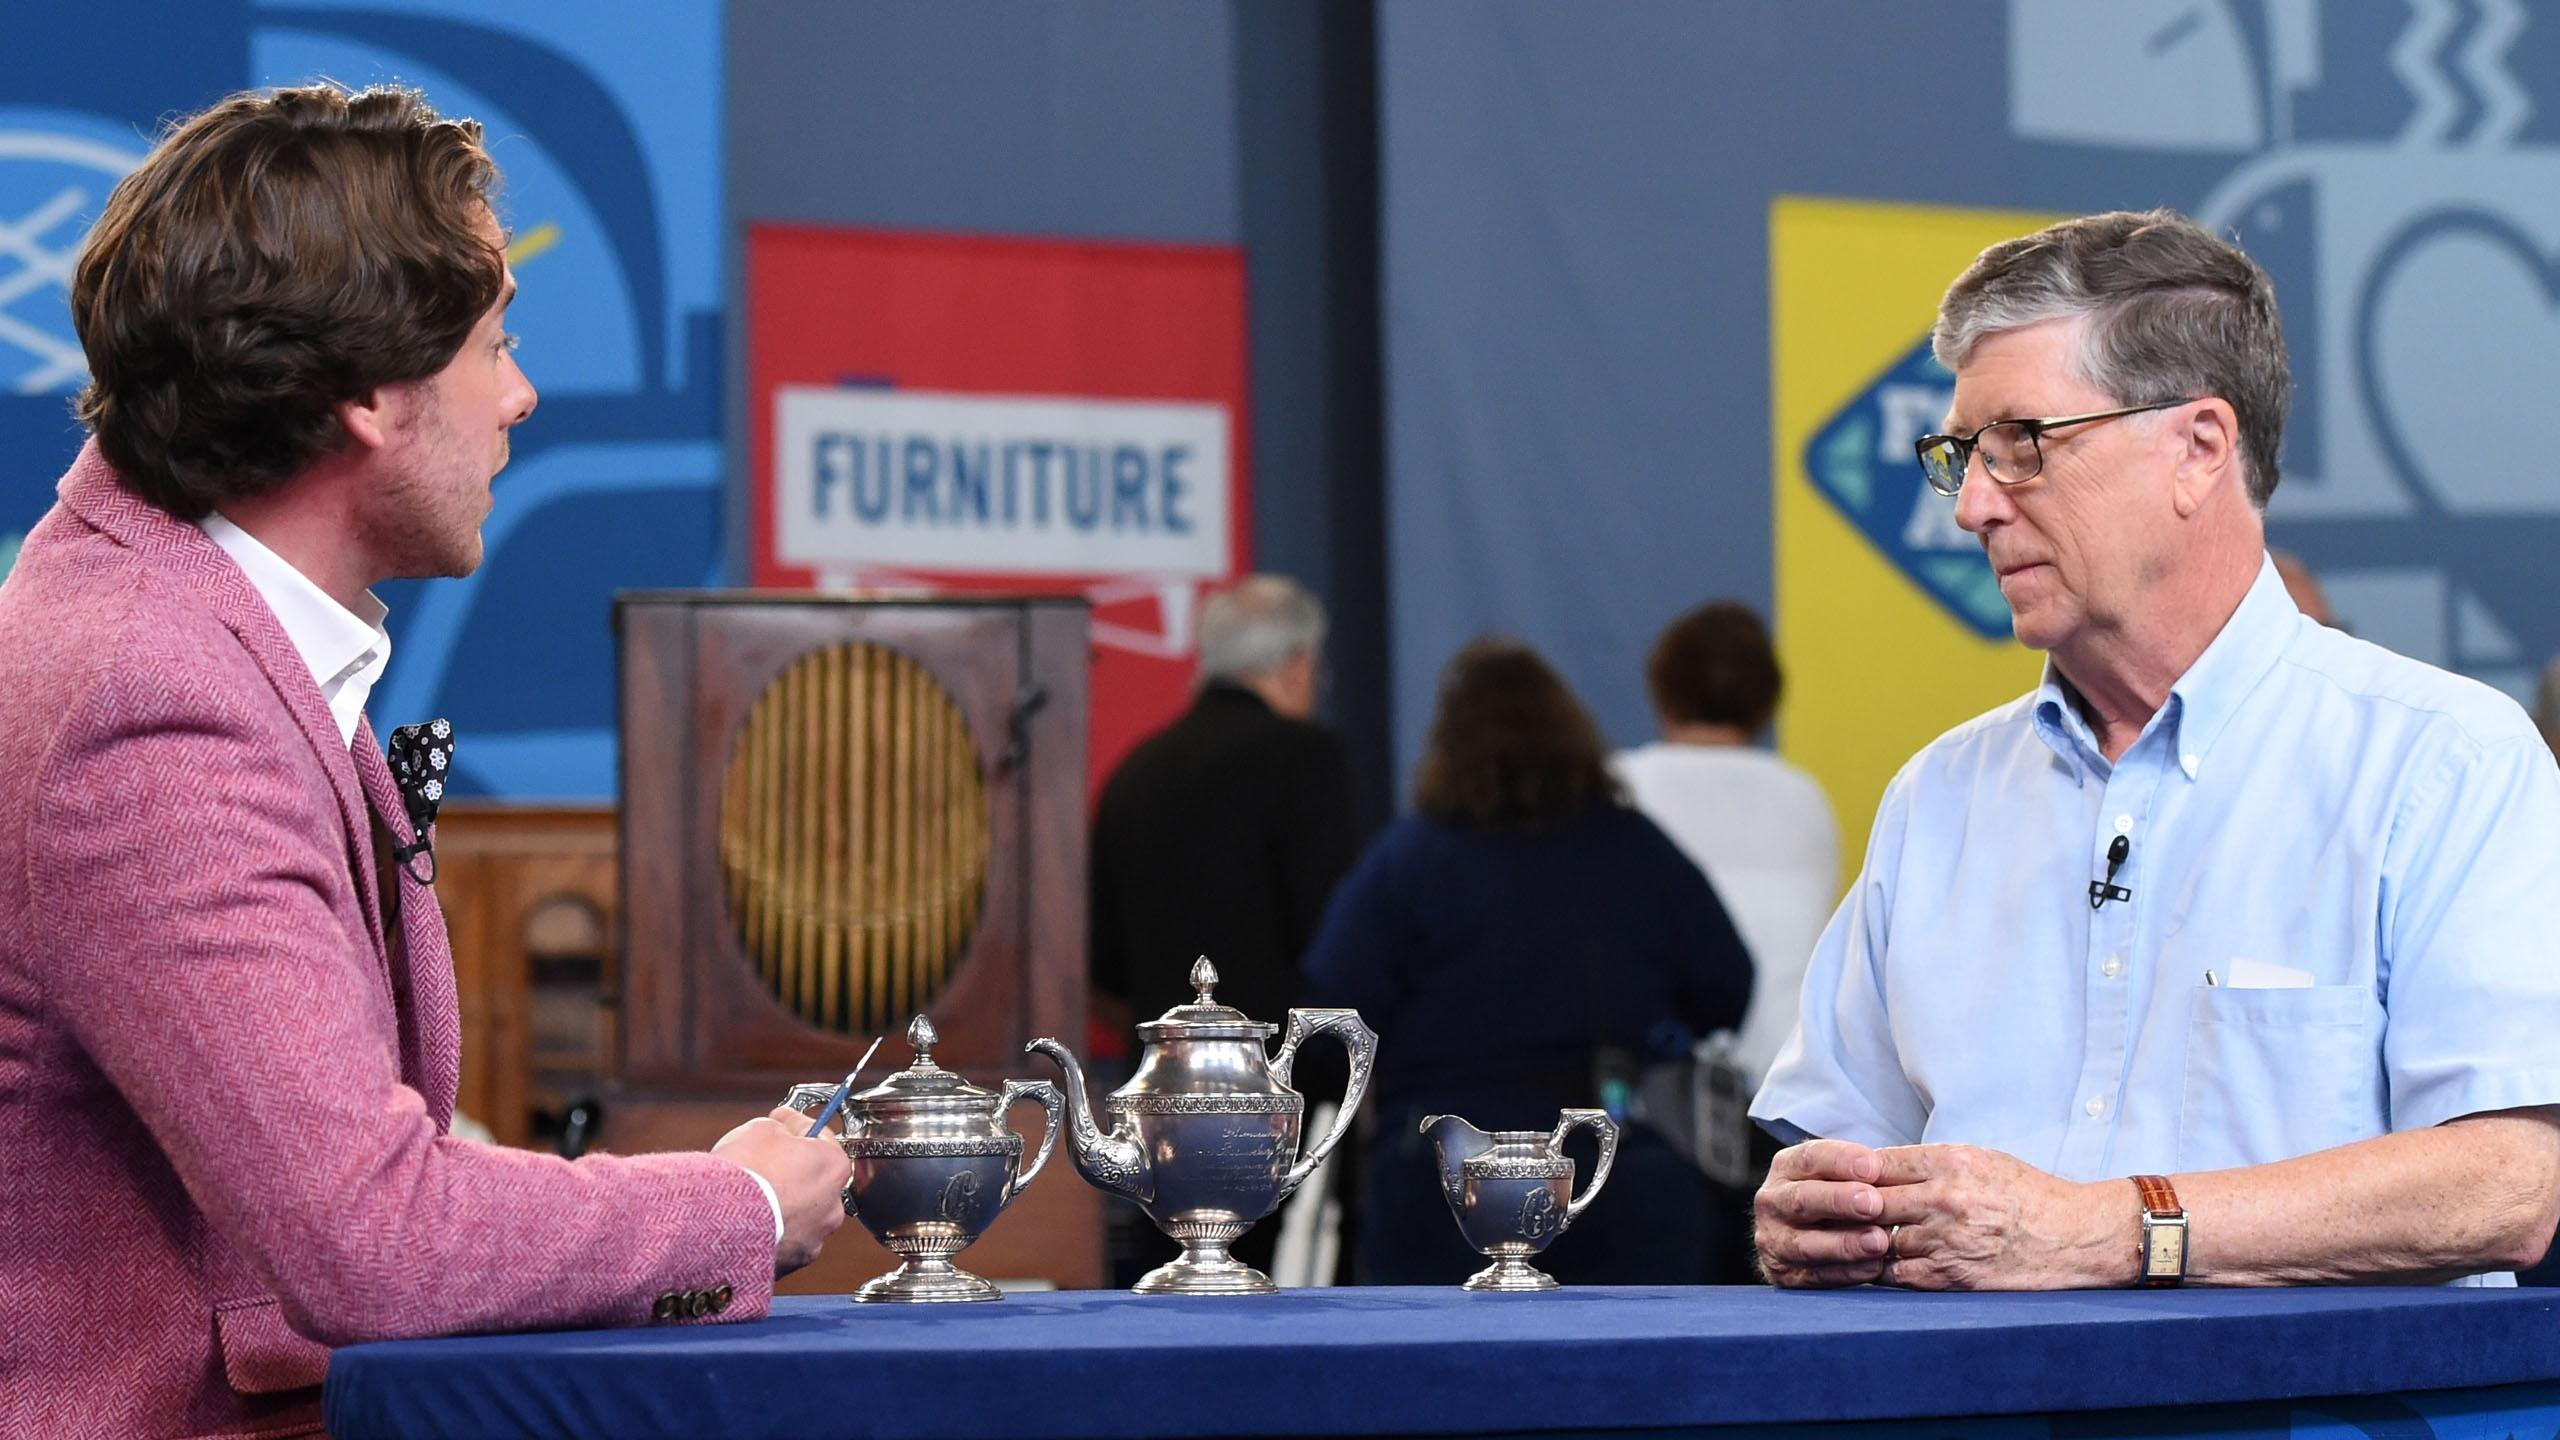 Antiques Roadshow - Cleveland, Hour 2 (2016) - Twin Cities PBS